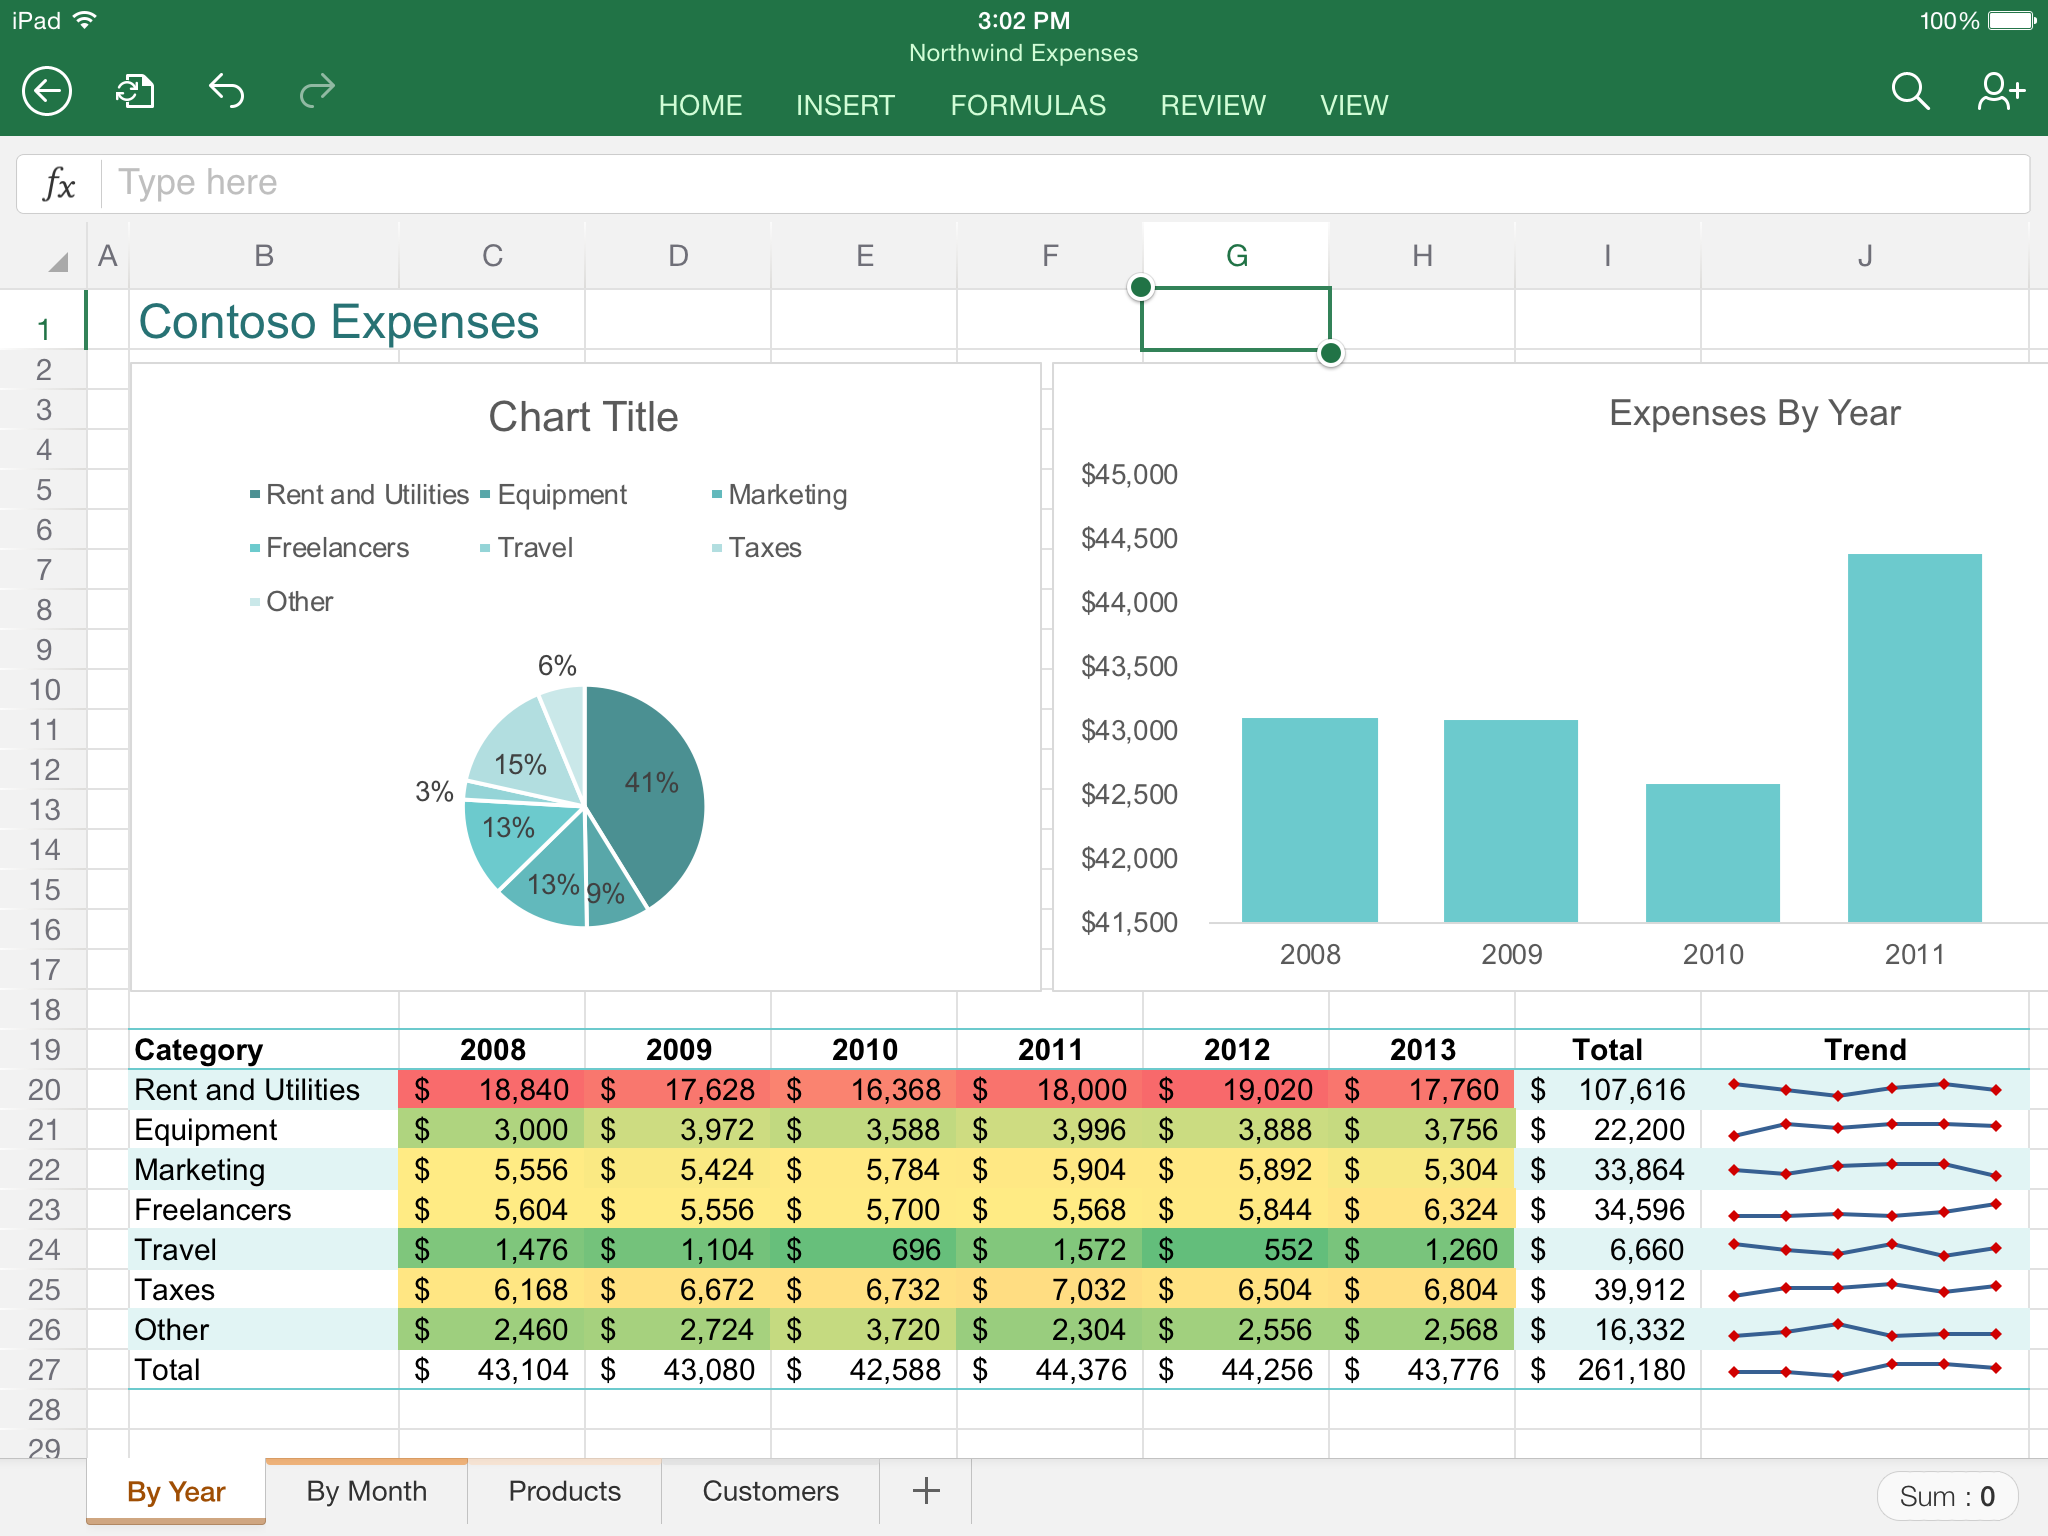 Ediblewildsus  Outstanding App Highlight Excel  Mobile Digital Now With Great Excel In Action With Beautiful Find Data Tables In Excel Also Using Excel To Calculate In Addition Examples Of Excel And Importing Excel Into Sql As Well As Discounted Cash Flow Excel Formula Additionally Userforms In Excel From Youstonybrookedu With Ediblewildsus  Great App Highlight Excel  Mobile Digital Now With Beautiful Excel In Action And Outstanding Find Data Tables In Excel Also Using Excel To Calculate In Addition Examples Of Excel From Youstonybrookedu